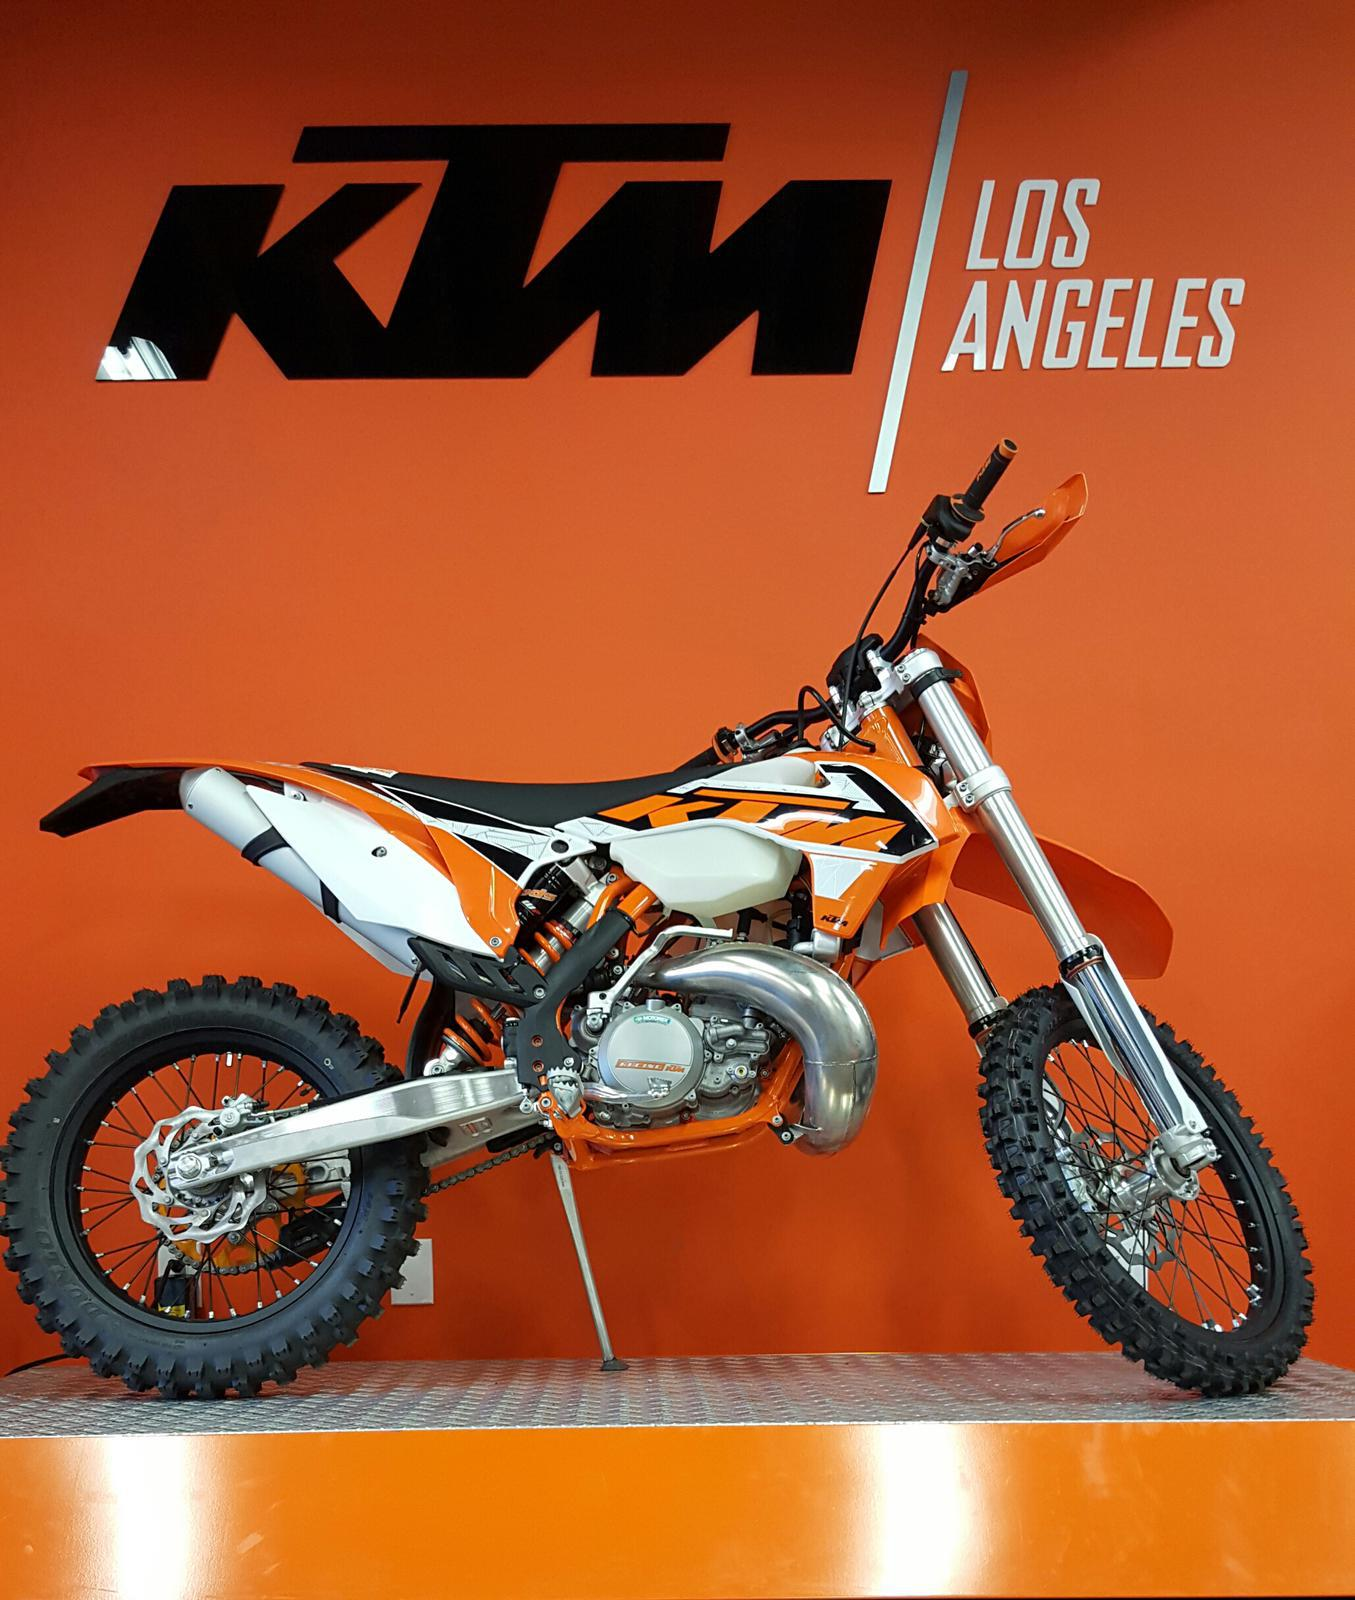 2016 ktm 300 xc-w for sale in los angeles, ca   beverly hills